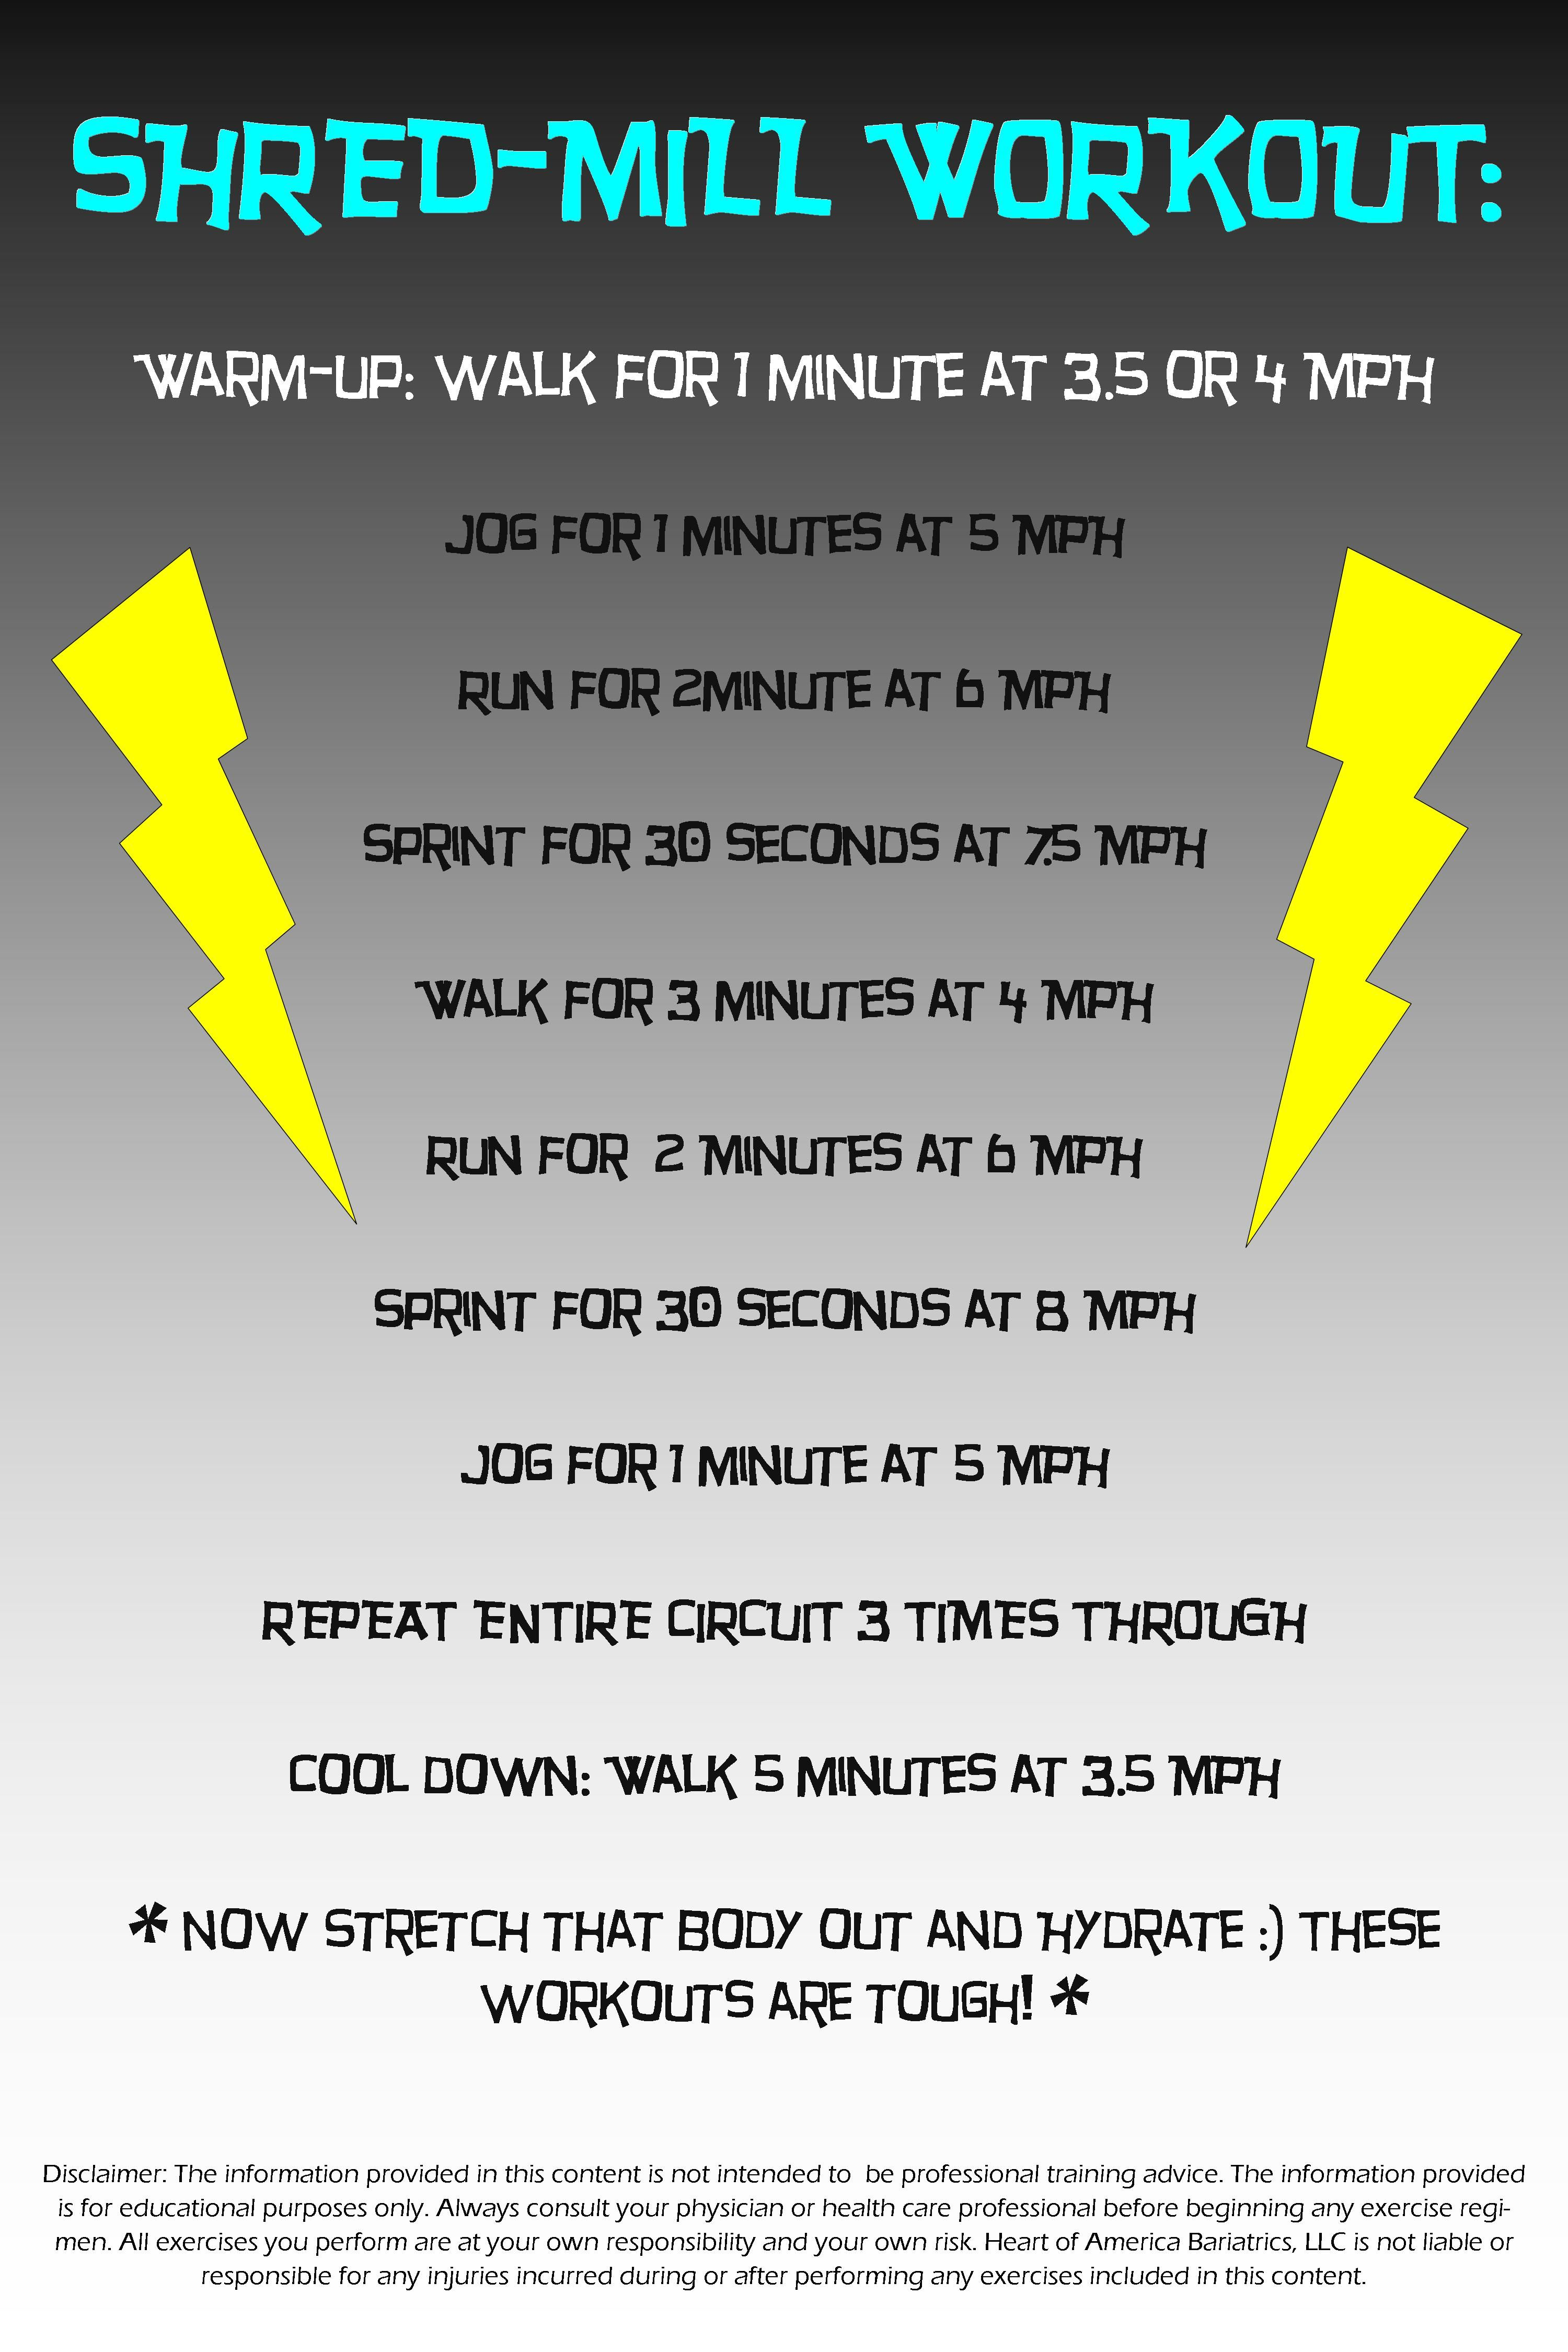 Shred-Mill Workout  For an intense treadmill workout, give this bad